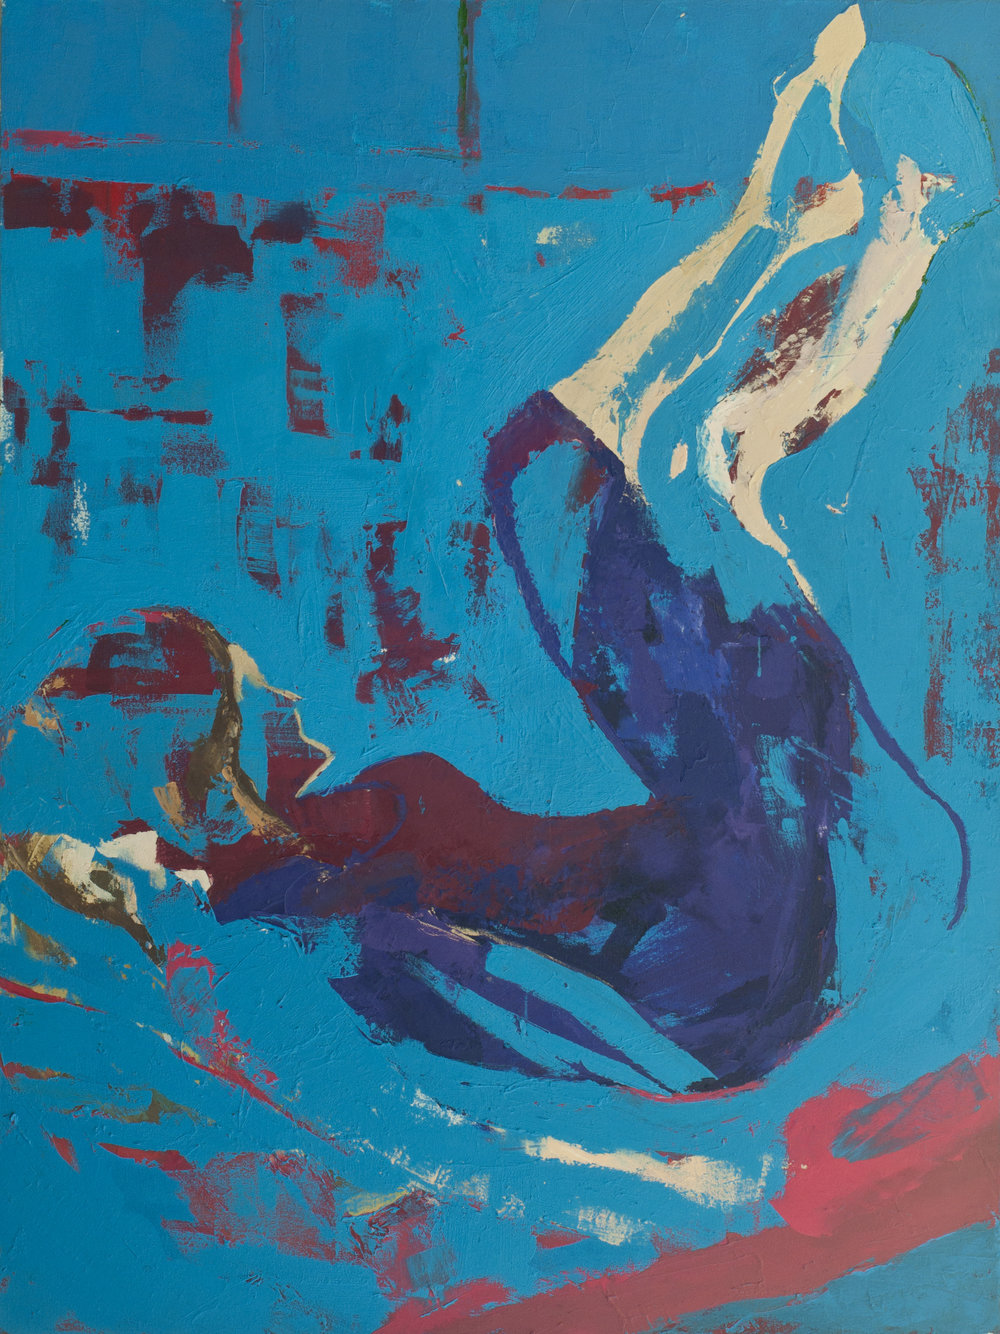 Blue Dreaming, Acrylic on canvas 48 x 36 inches 2014